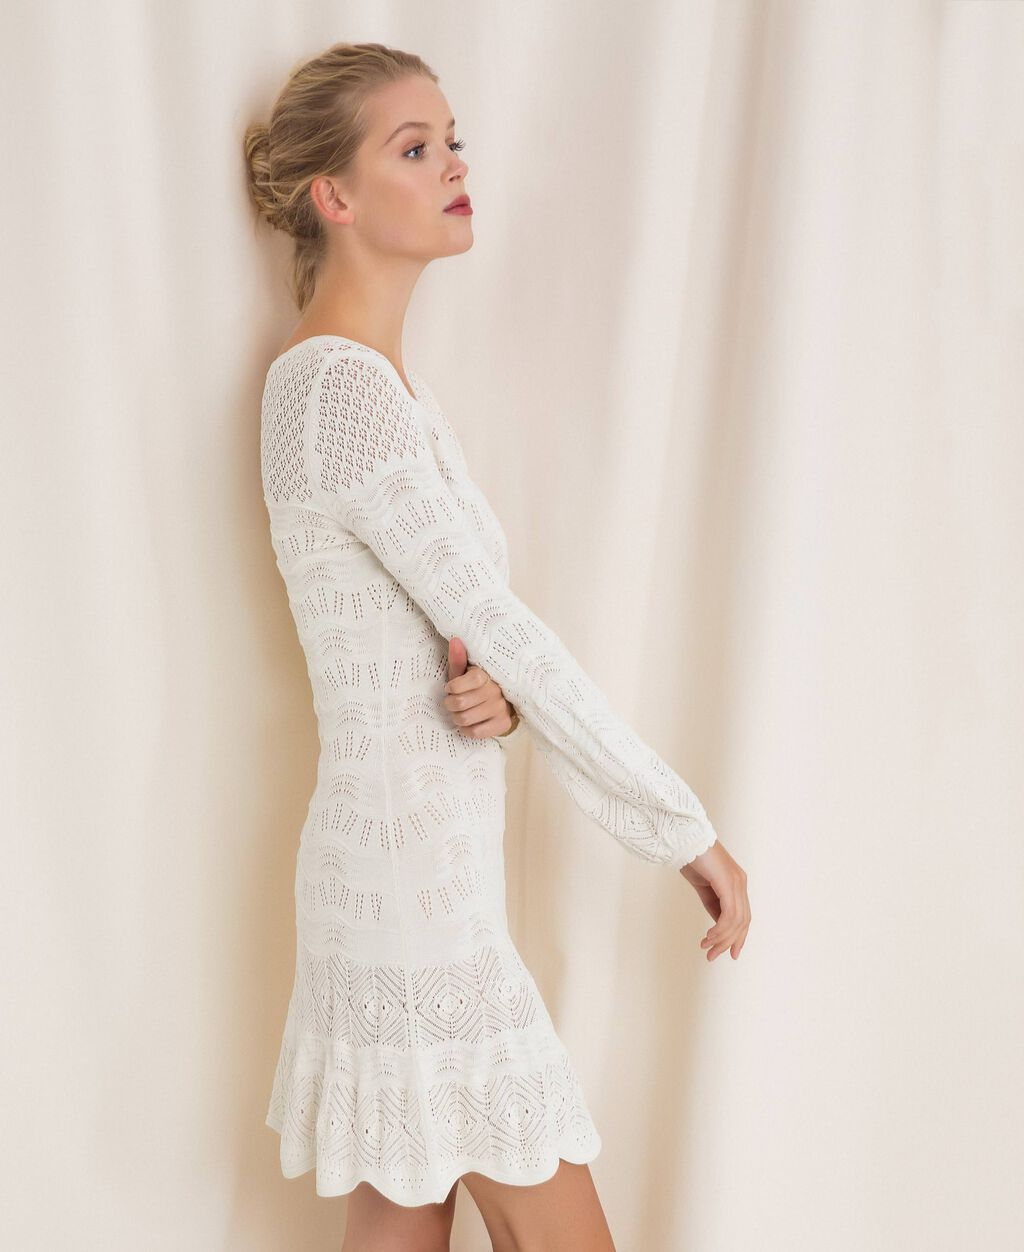 Lace effect knit dress